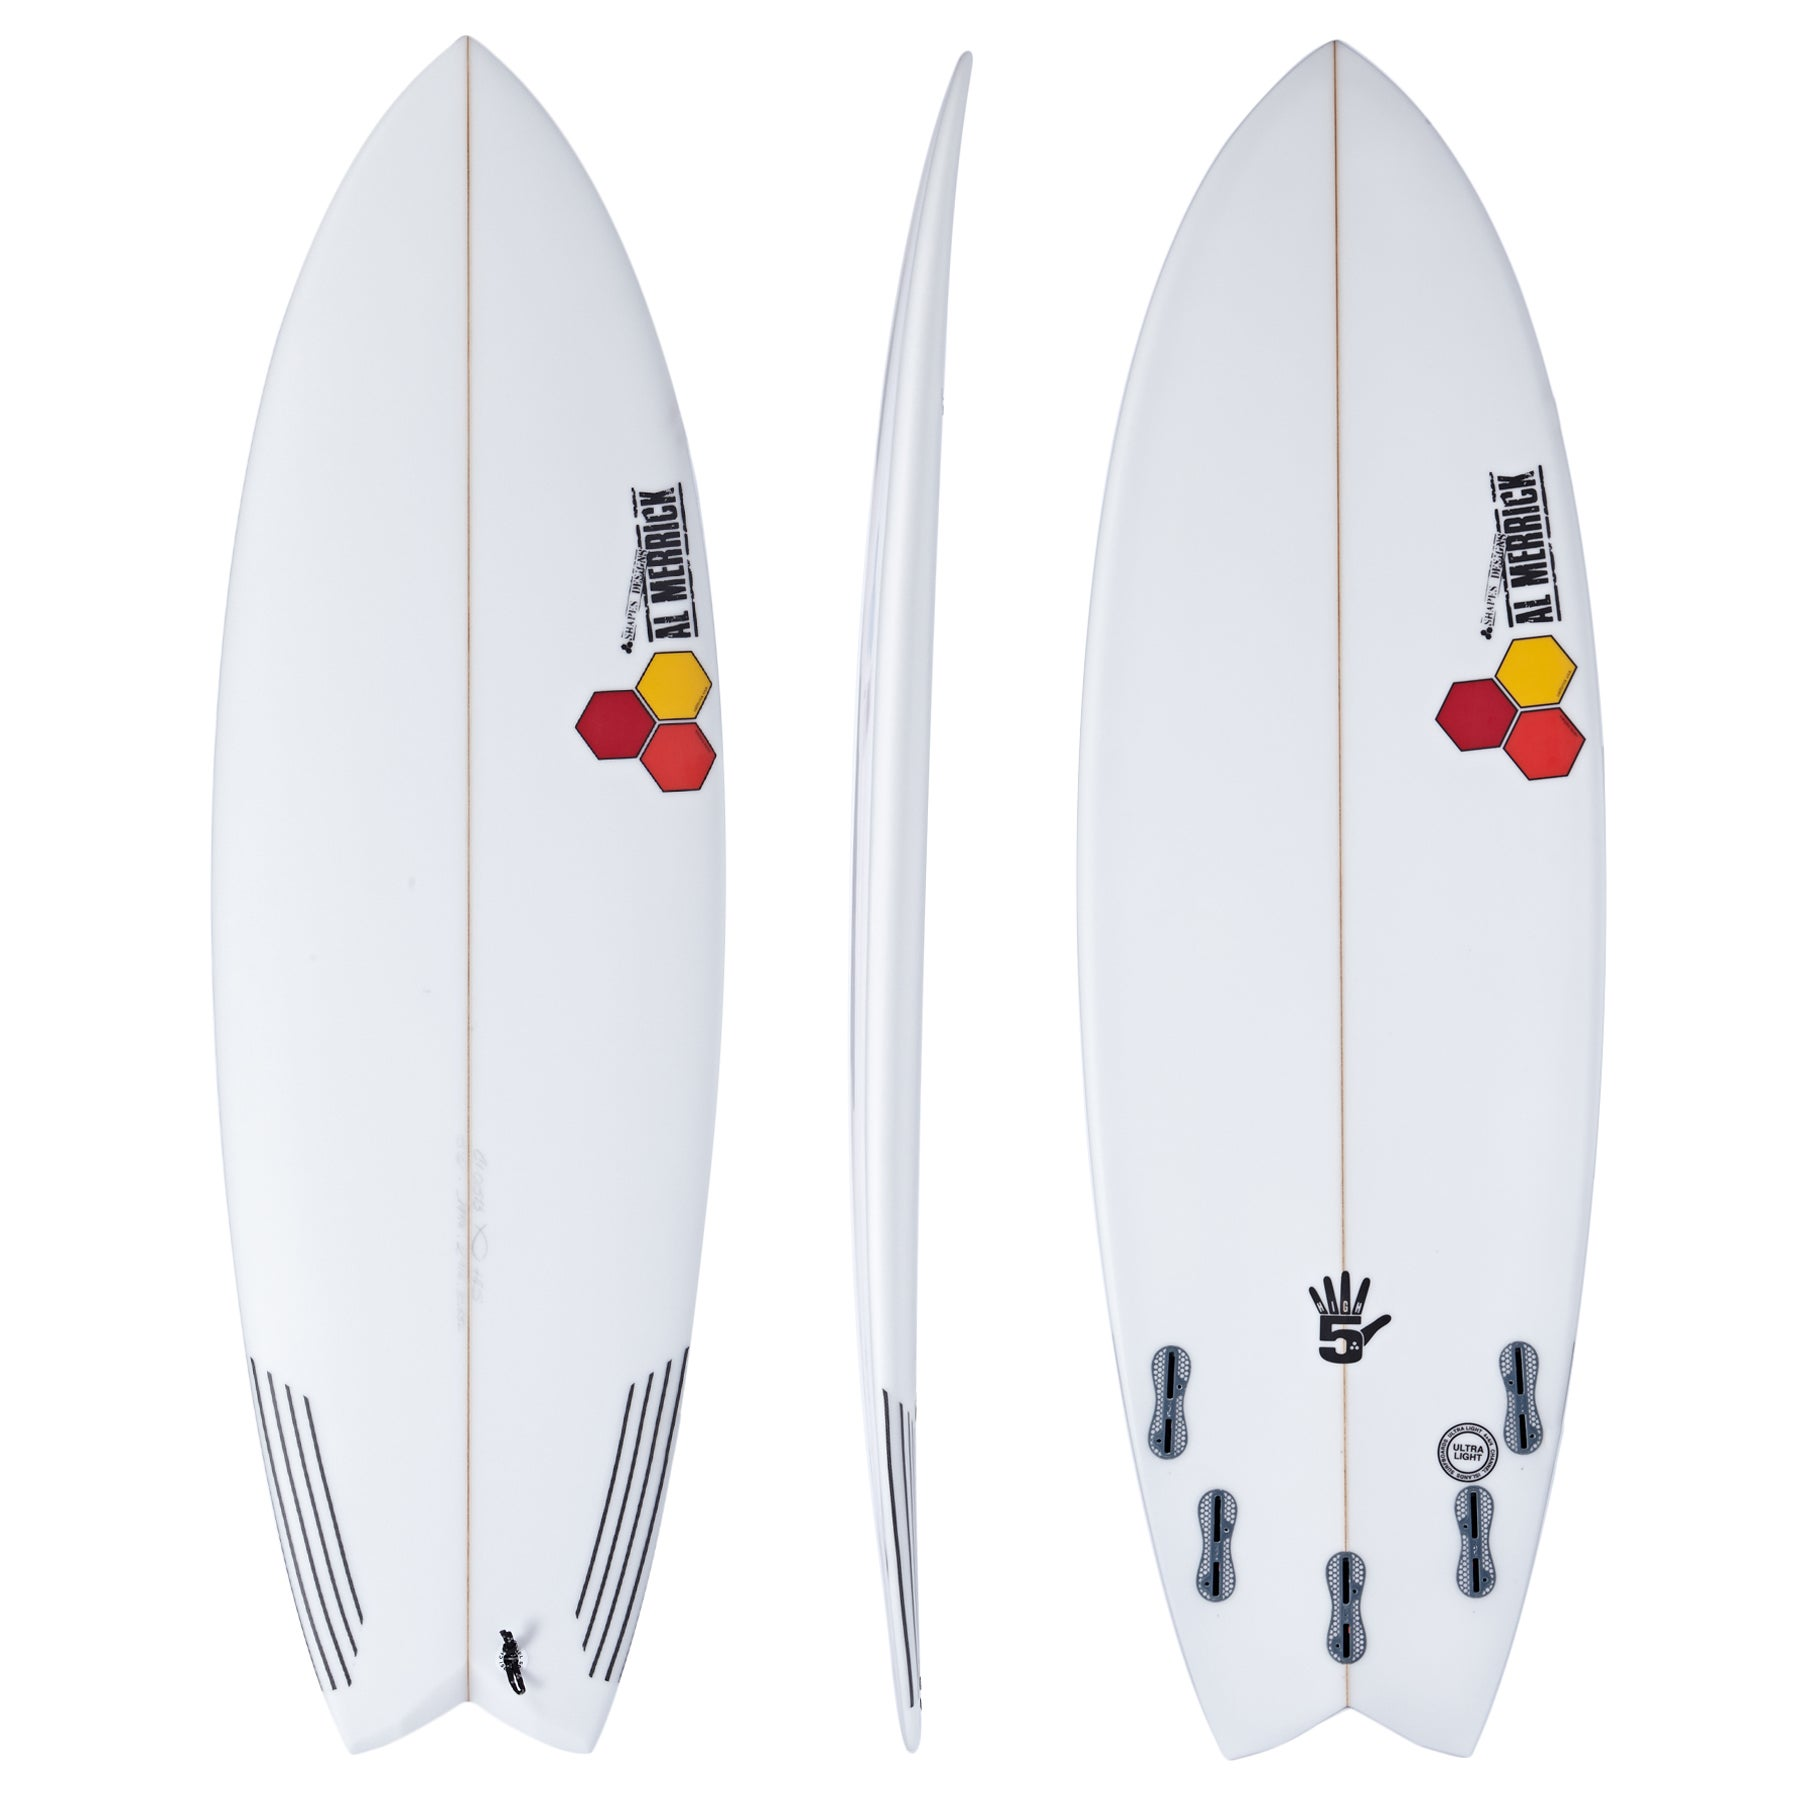 Channel Islands High 5 FCS II 5 Fin Surfboard